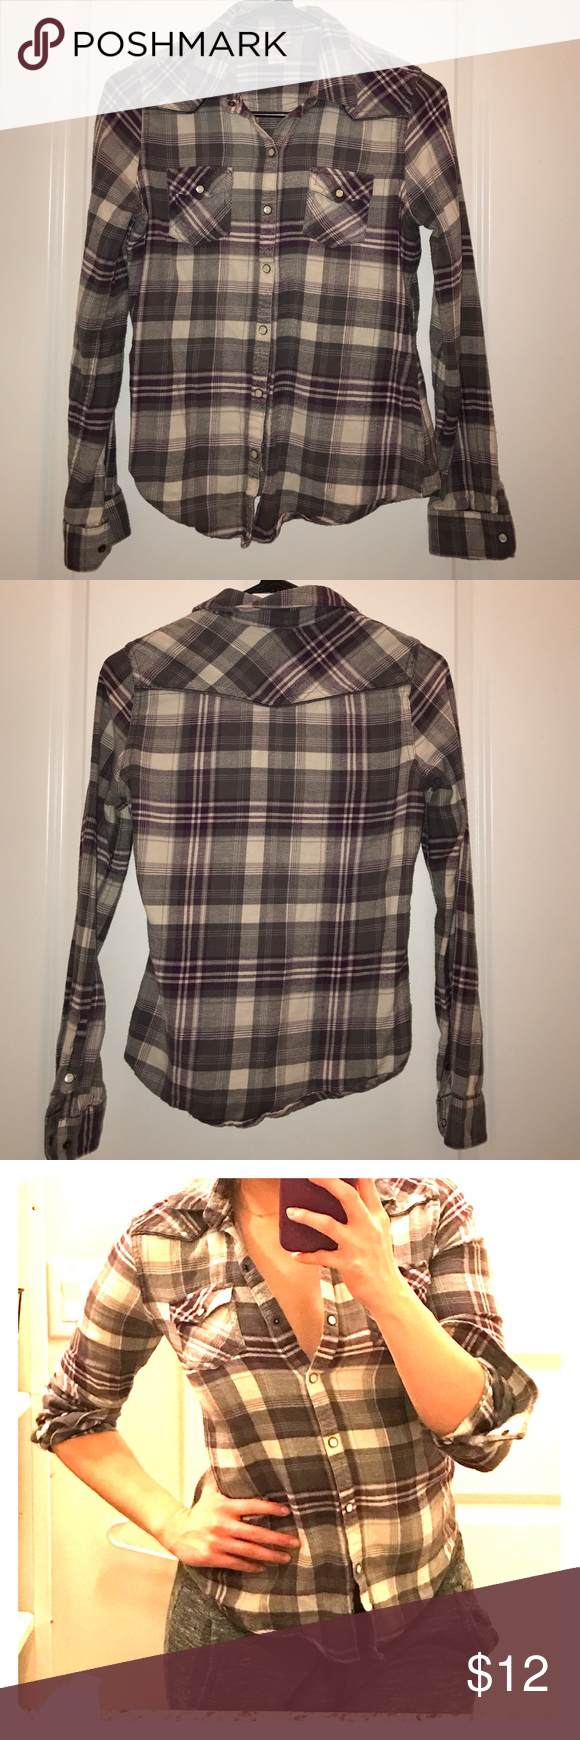 Mossimo Flannel Top Pearl snap flannel. Fitted and cute. Great condition. Not irregular fit... just wrinkly sorry Mossimo Supply Co Tops Button Down Shirts